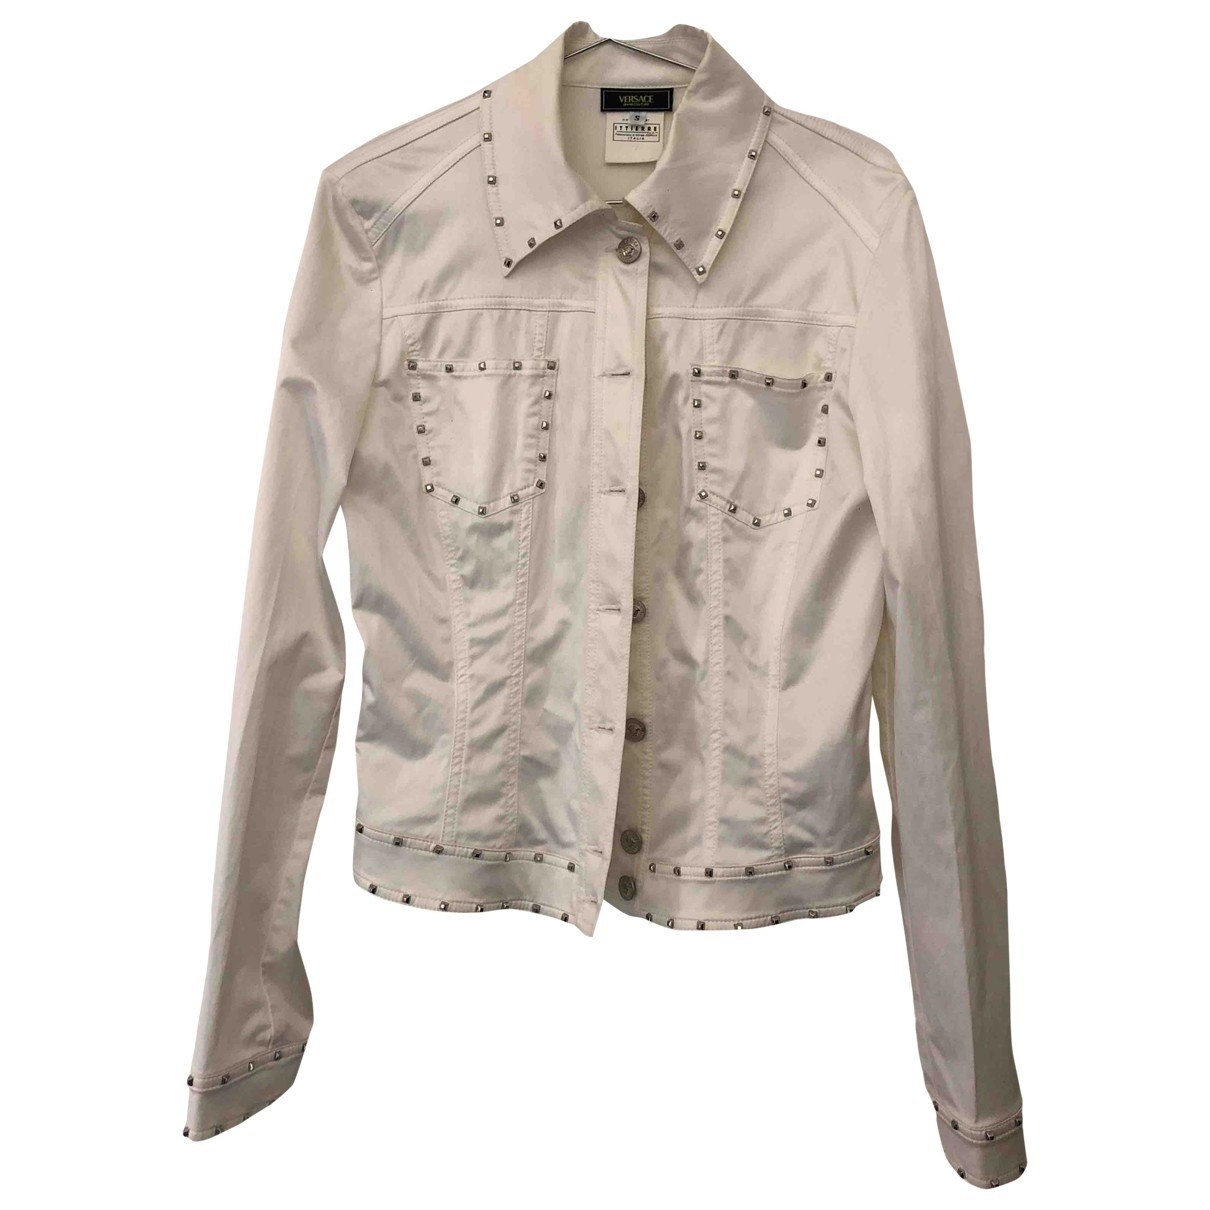 Versace Jeans \N White Cotton jacket for Women S International